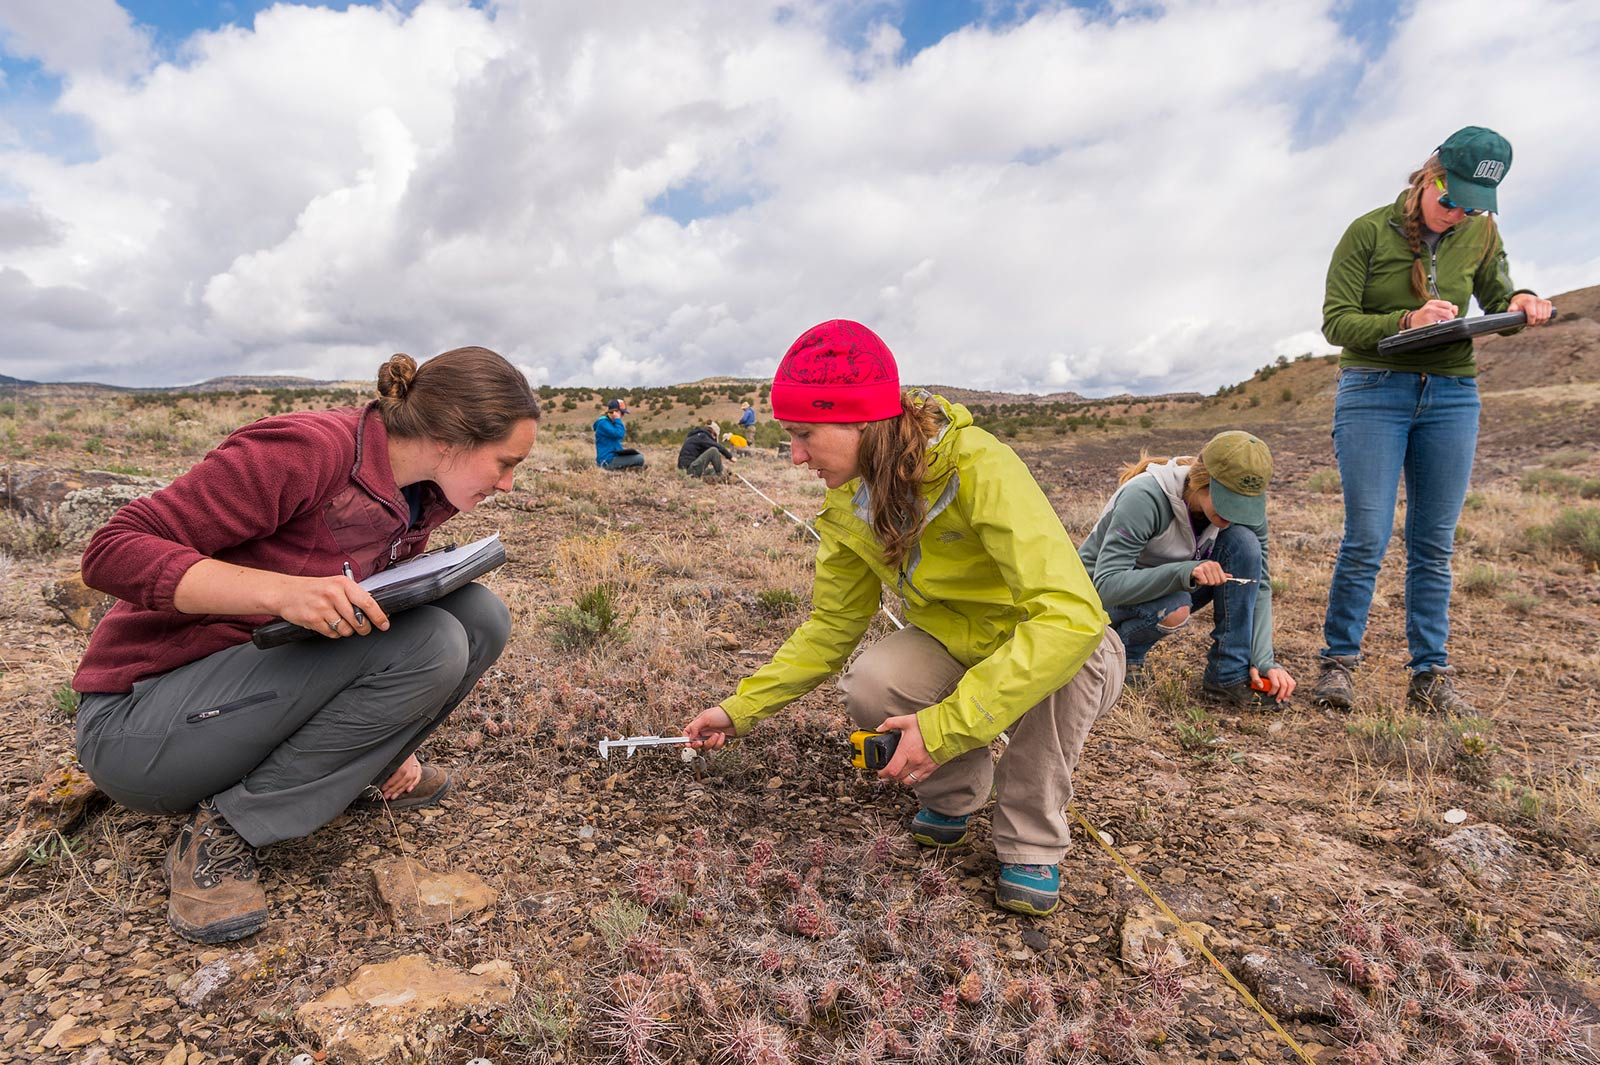 Photos: DBG research team in the field near De Beque, Colorado, for Sclerocactus glaucus. Photo credit: Scott Dressel Martin, courtesy of Denver Botanic Gardens.